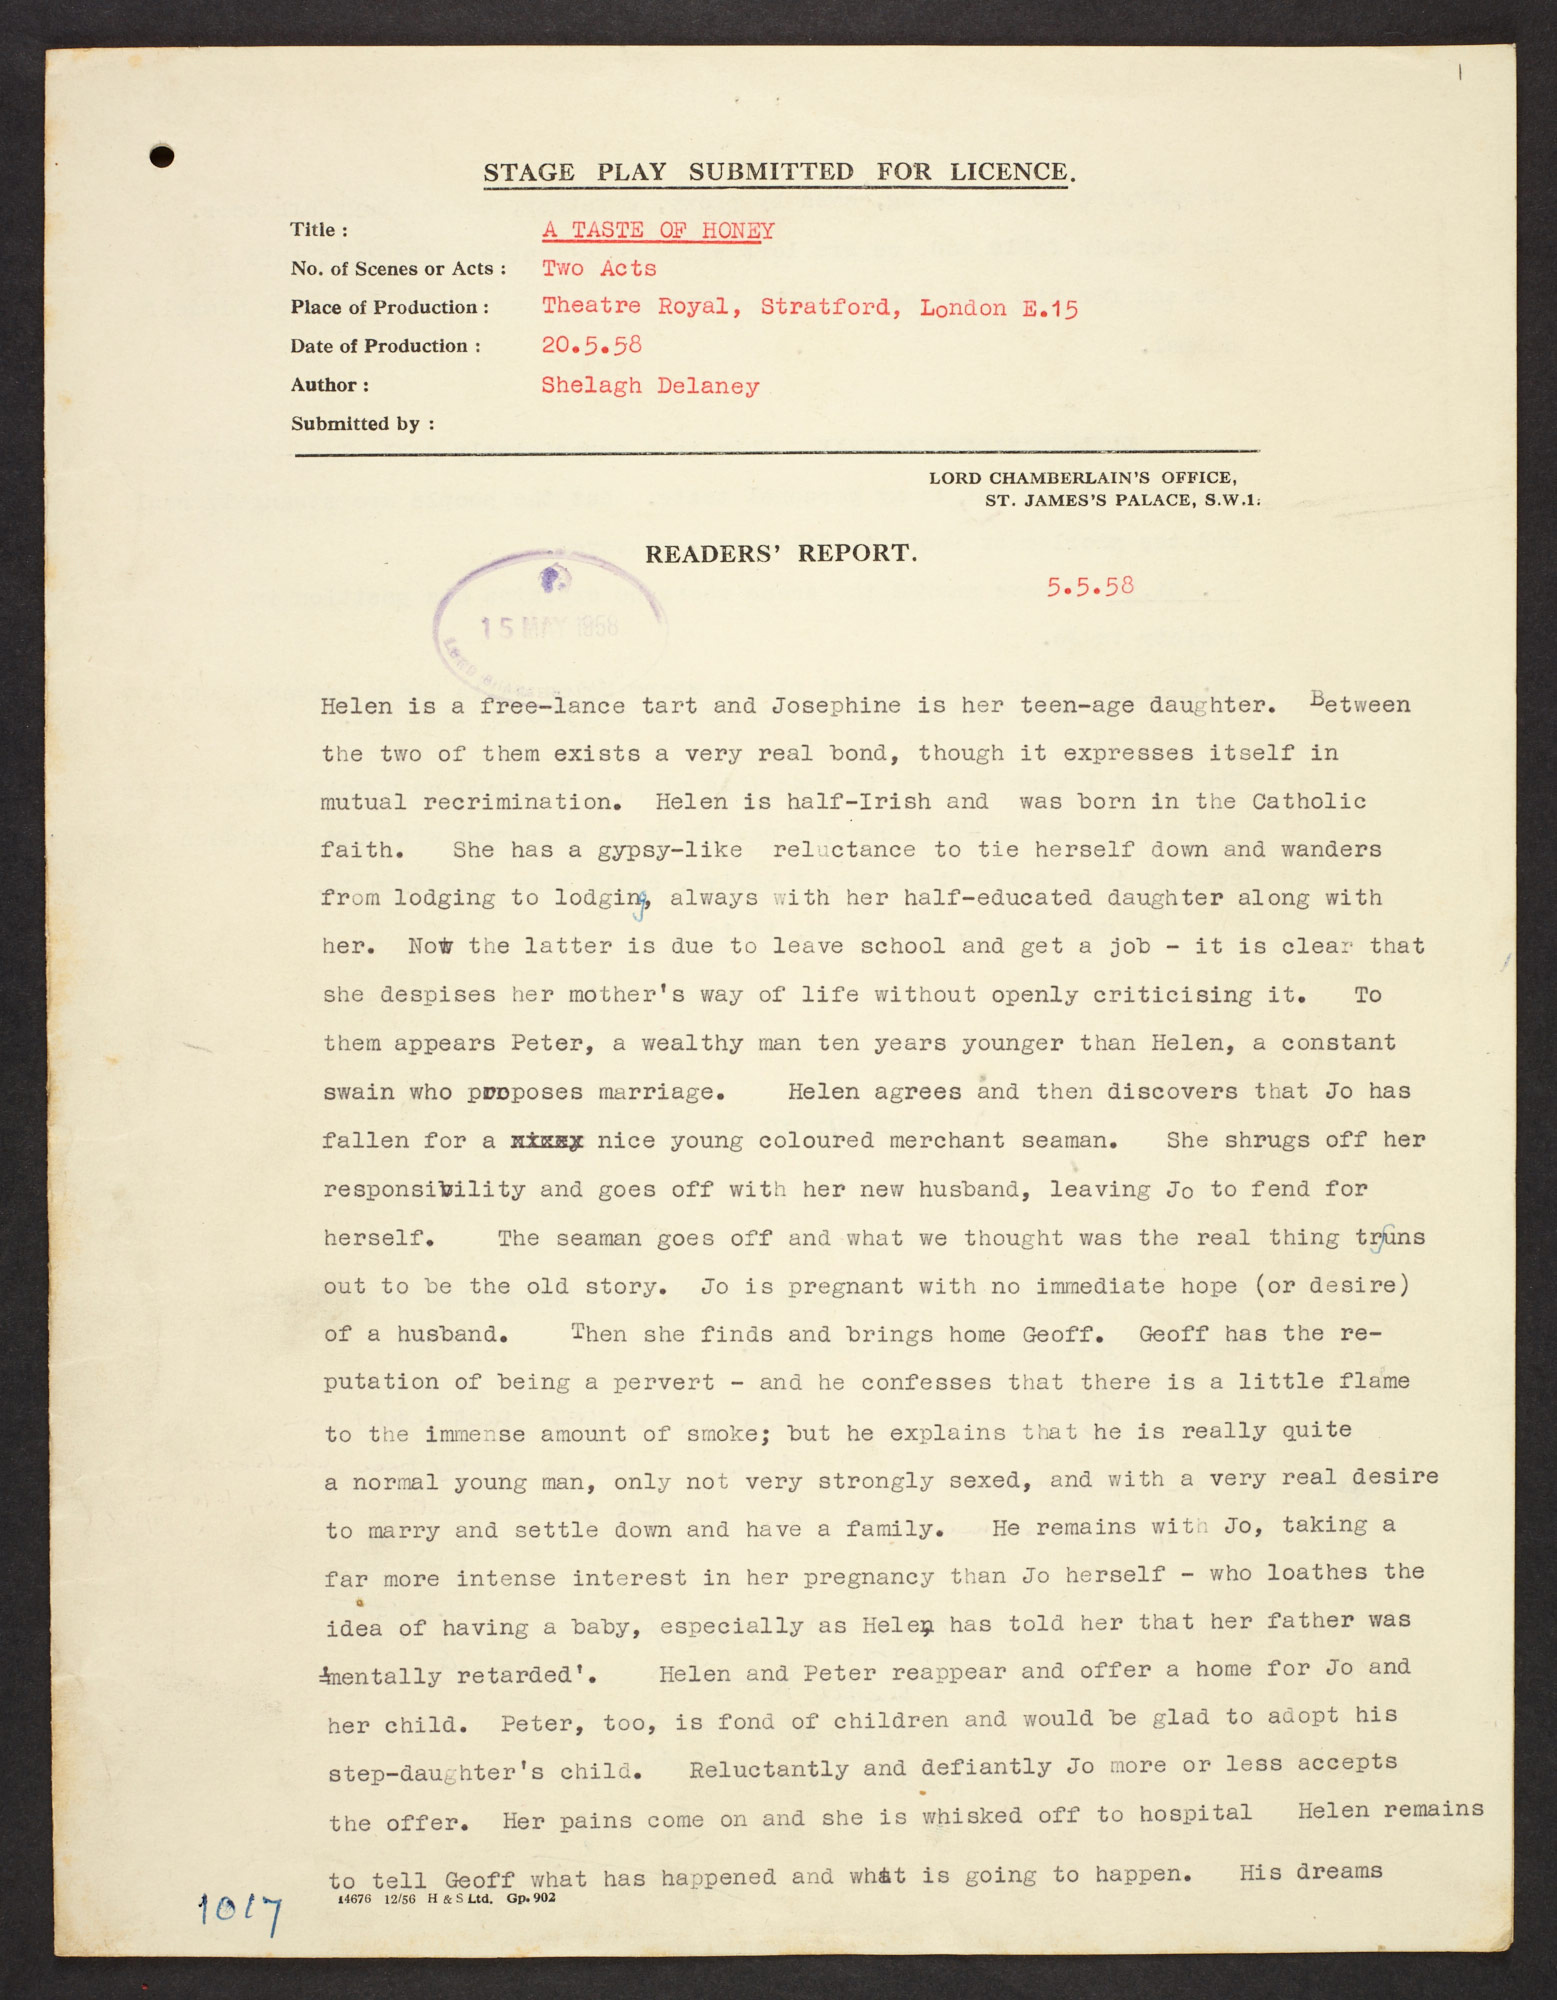 First page from the Lord Chamberlain's typescript report on Shelagh Delaney's A Taste Of Honey, outlining the play and showing the reader's opinions about the play